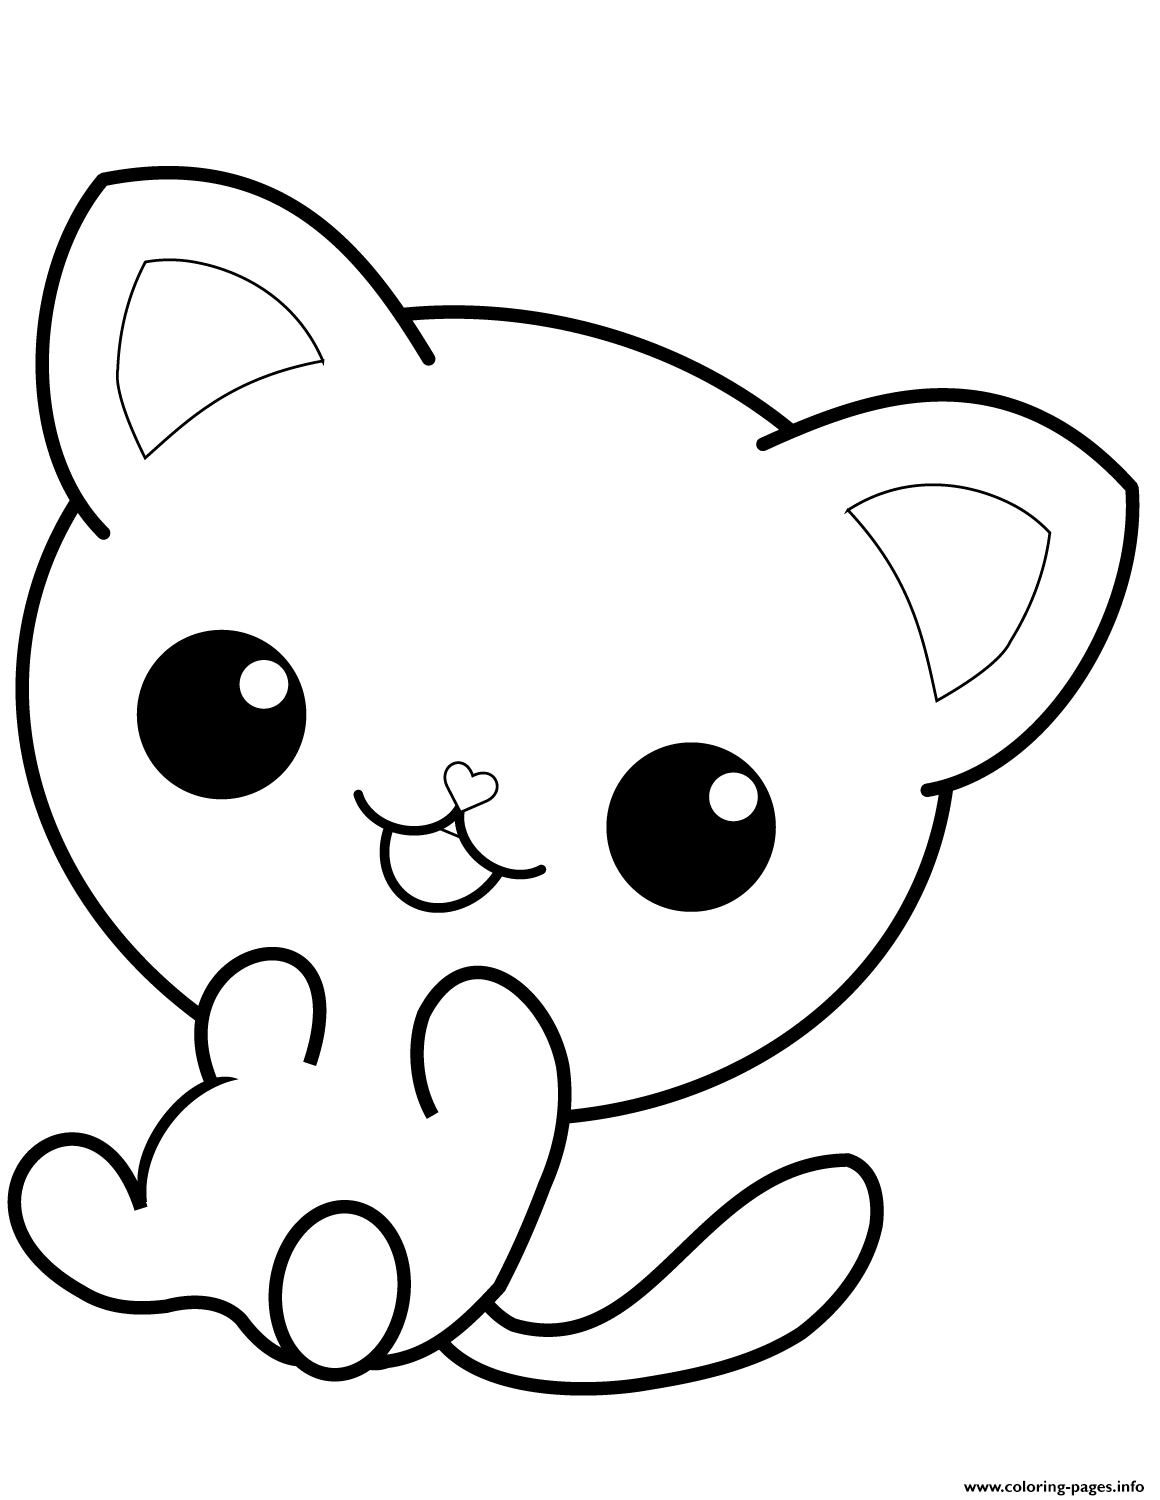 graphic regarding Cat Coloring Pages Printable titled Kawaii Kitty Cat Coloring Webpages Printable